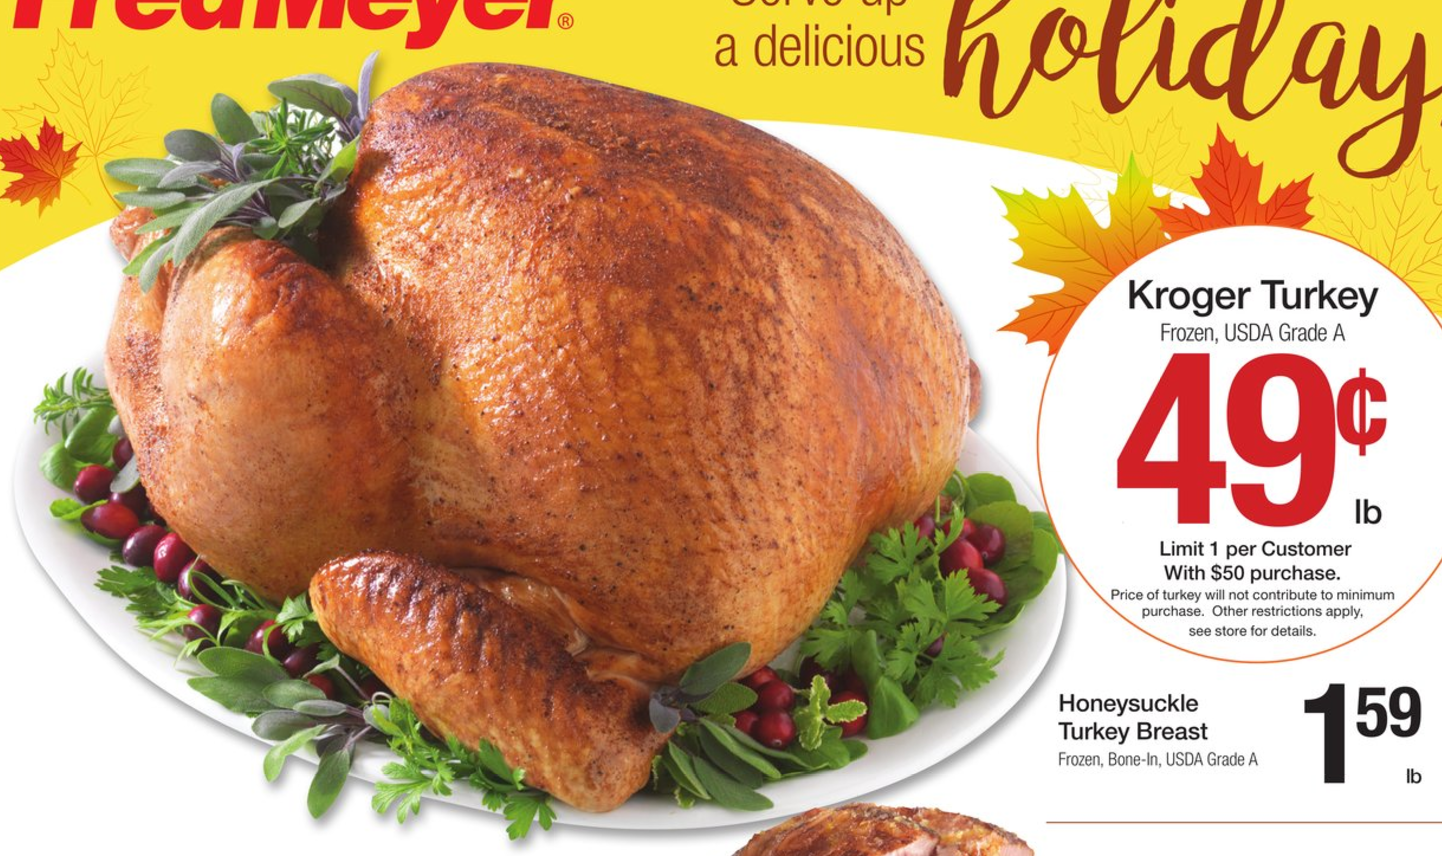 Tons of Turkey Deals 2016